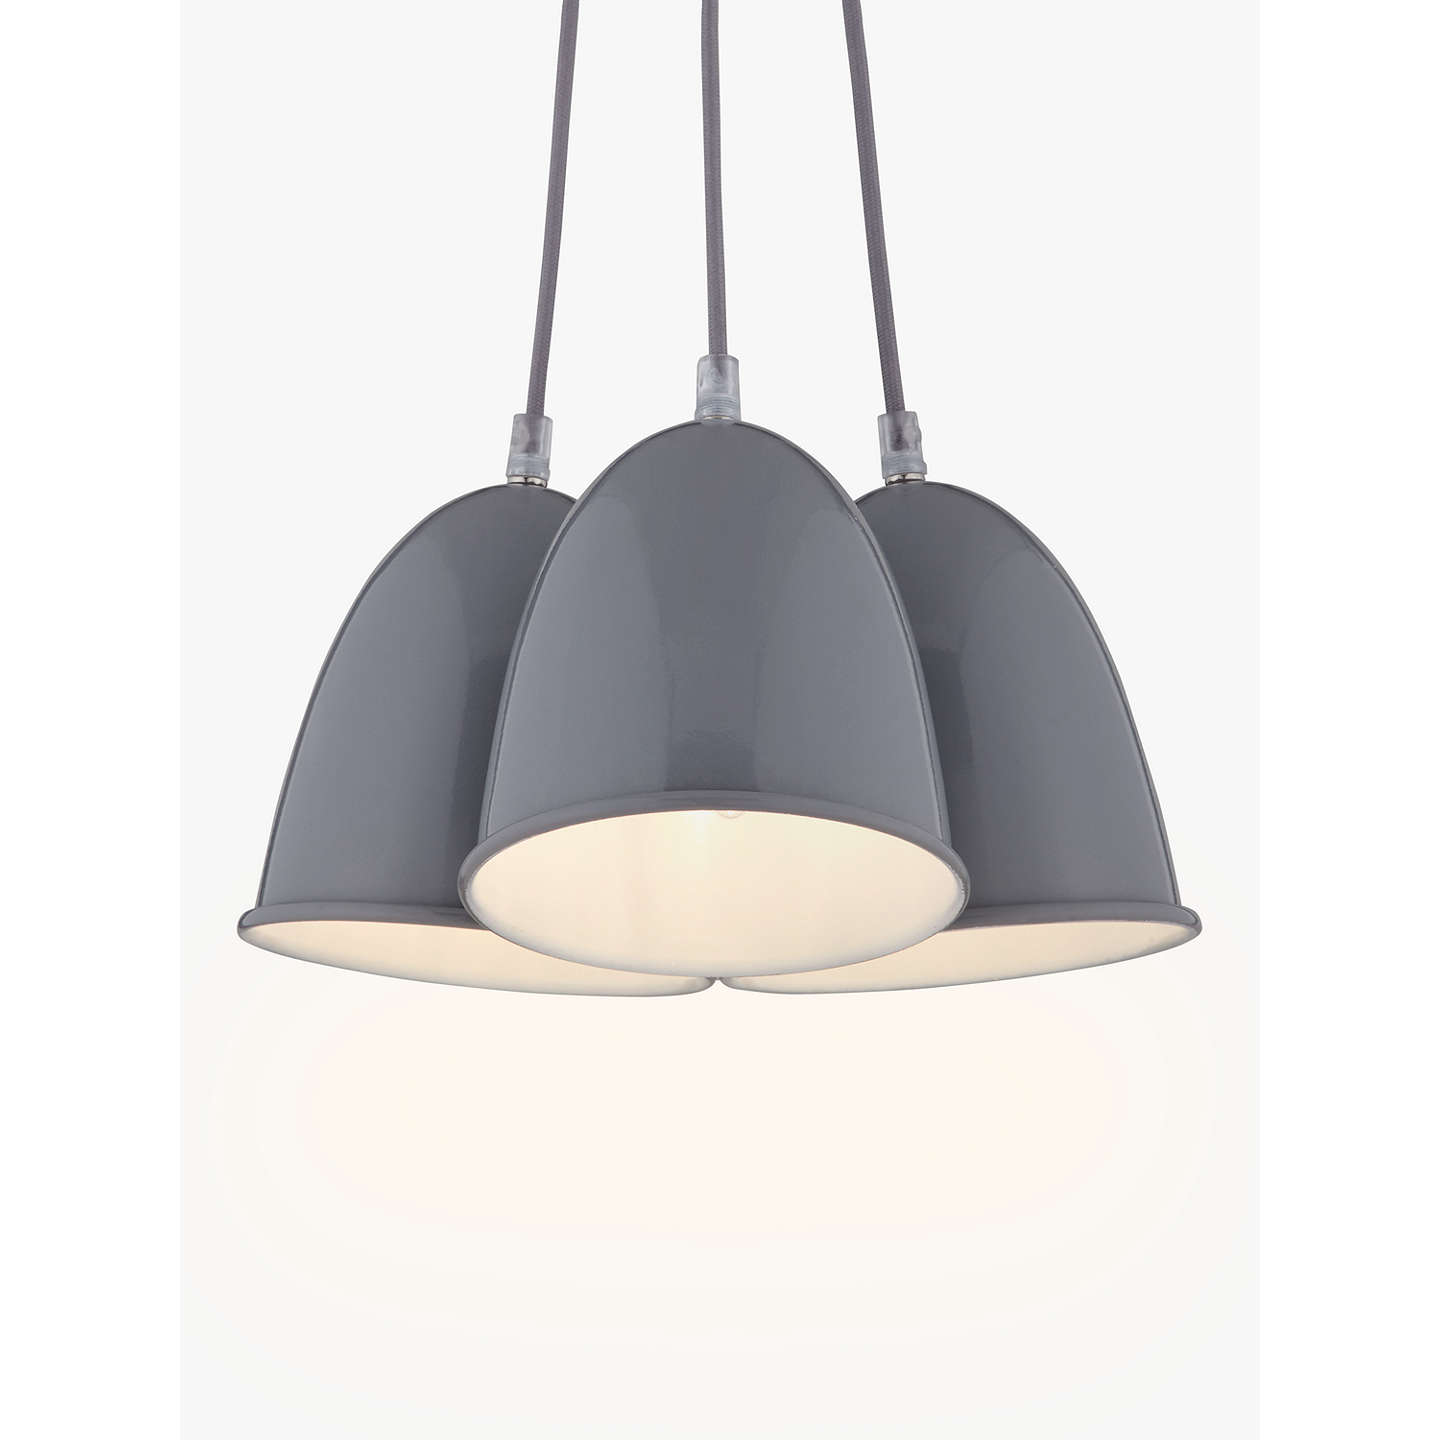 House by john lewis riley 3 light ceiling pendant grey at john lewis buyhouse by john lewis riley 3 light ceiling pendant grey online at johnlewis mozeypictures